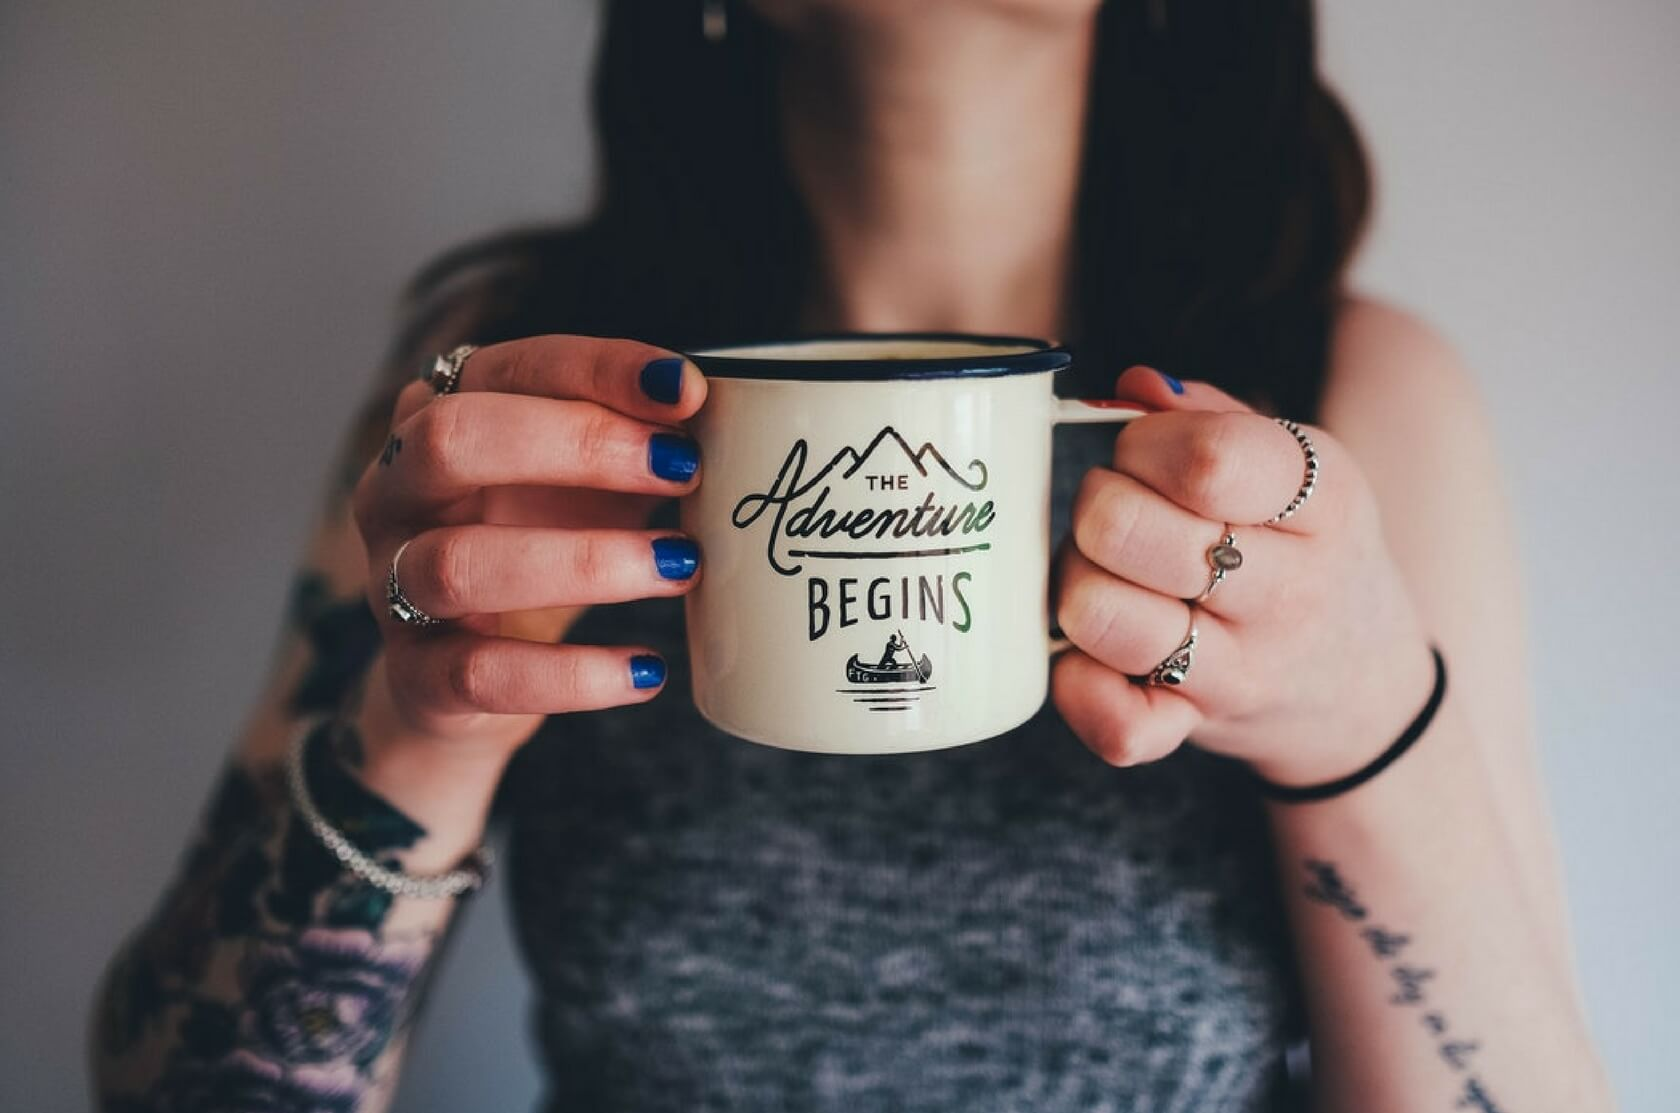 Authentic English with short movies. The Adventure Begins mug.